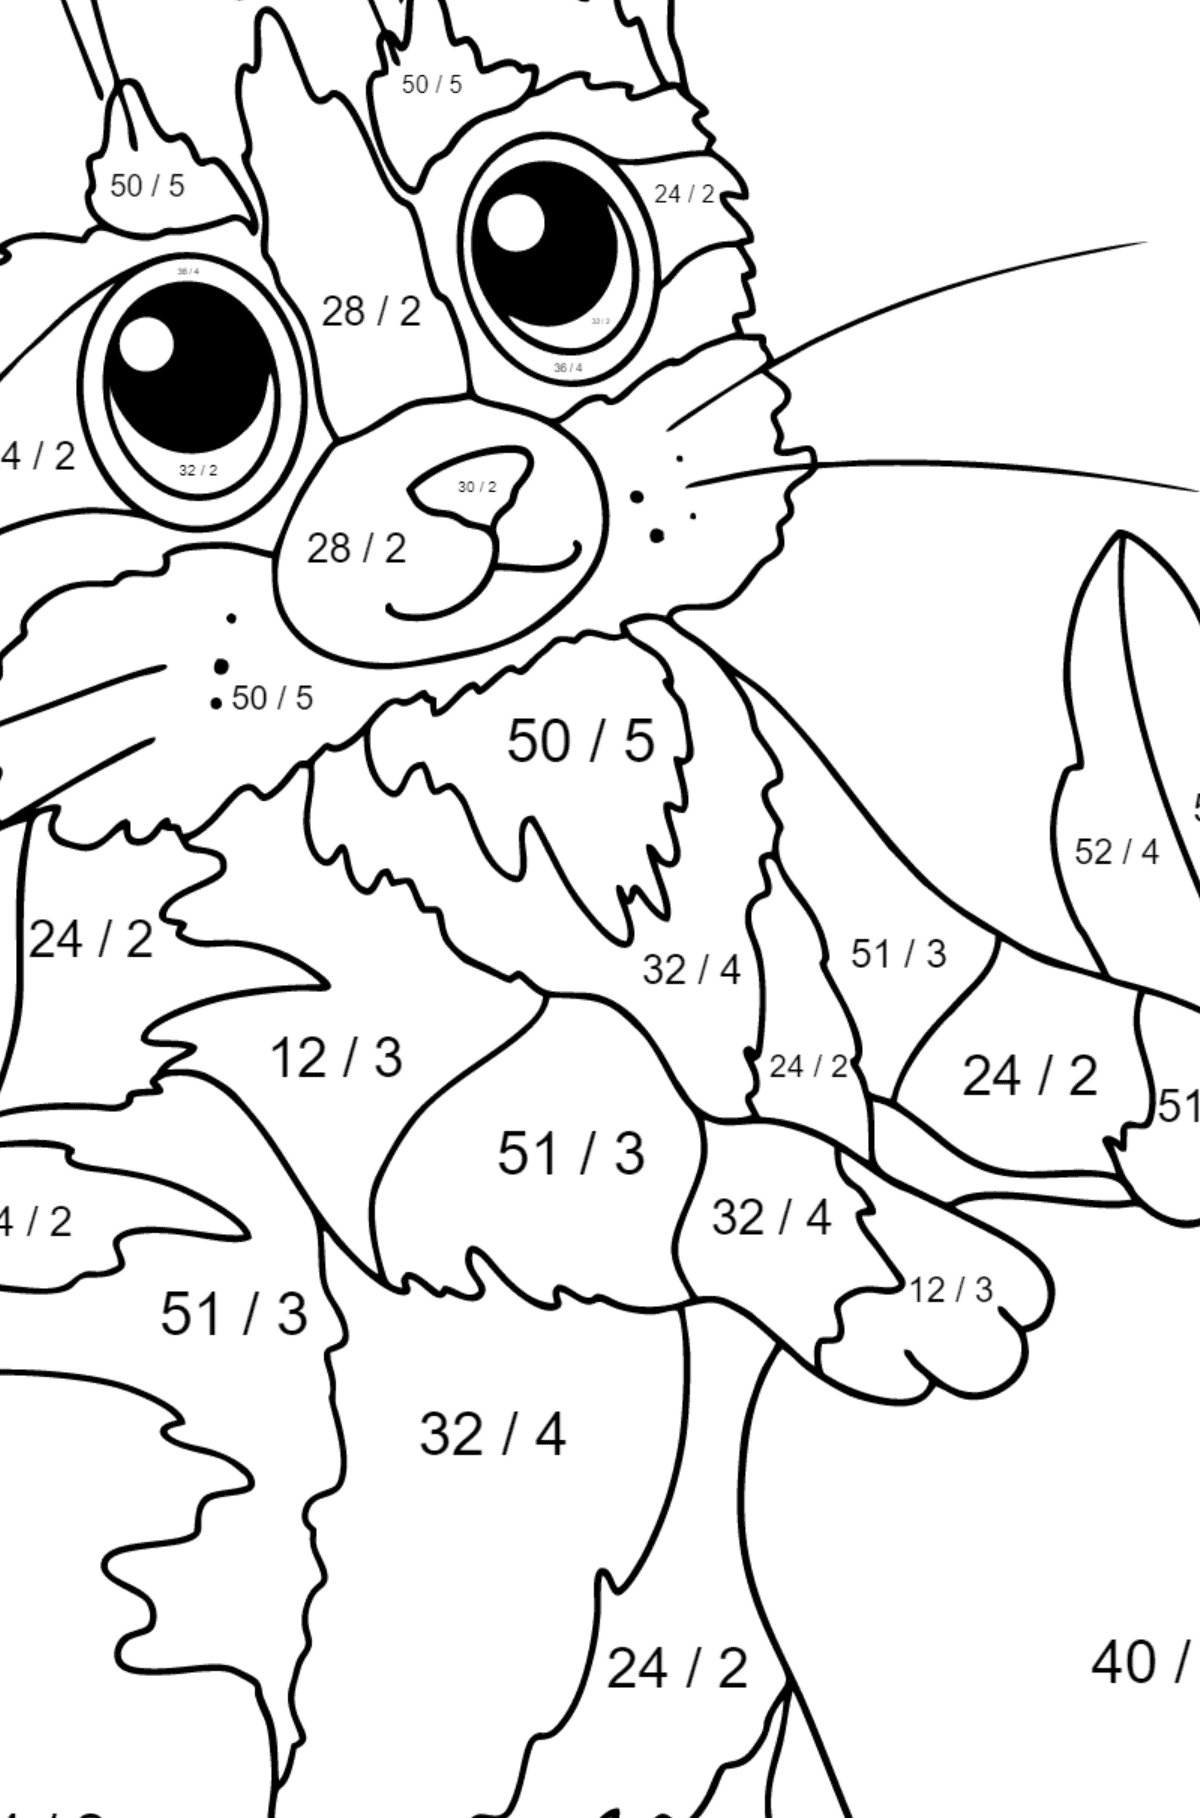 Coloring Page - A Cat and a Ripe Apple - Math Coloring - Division for Kids